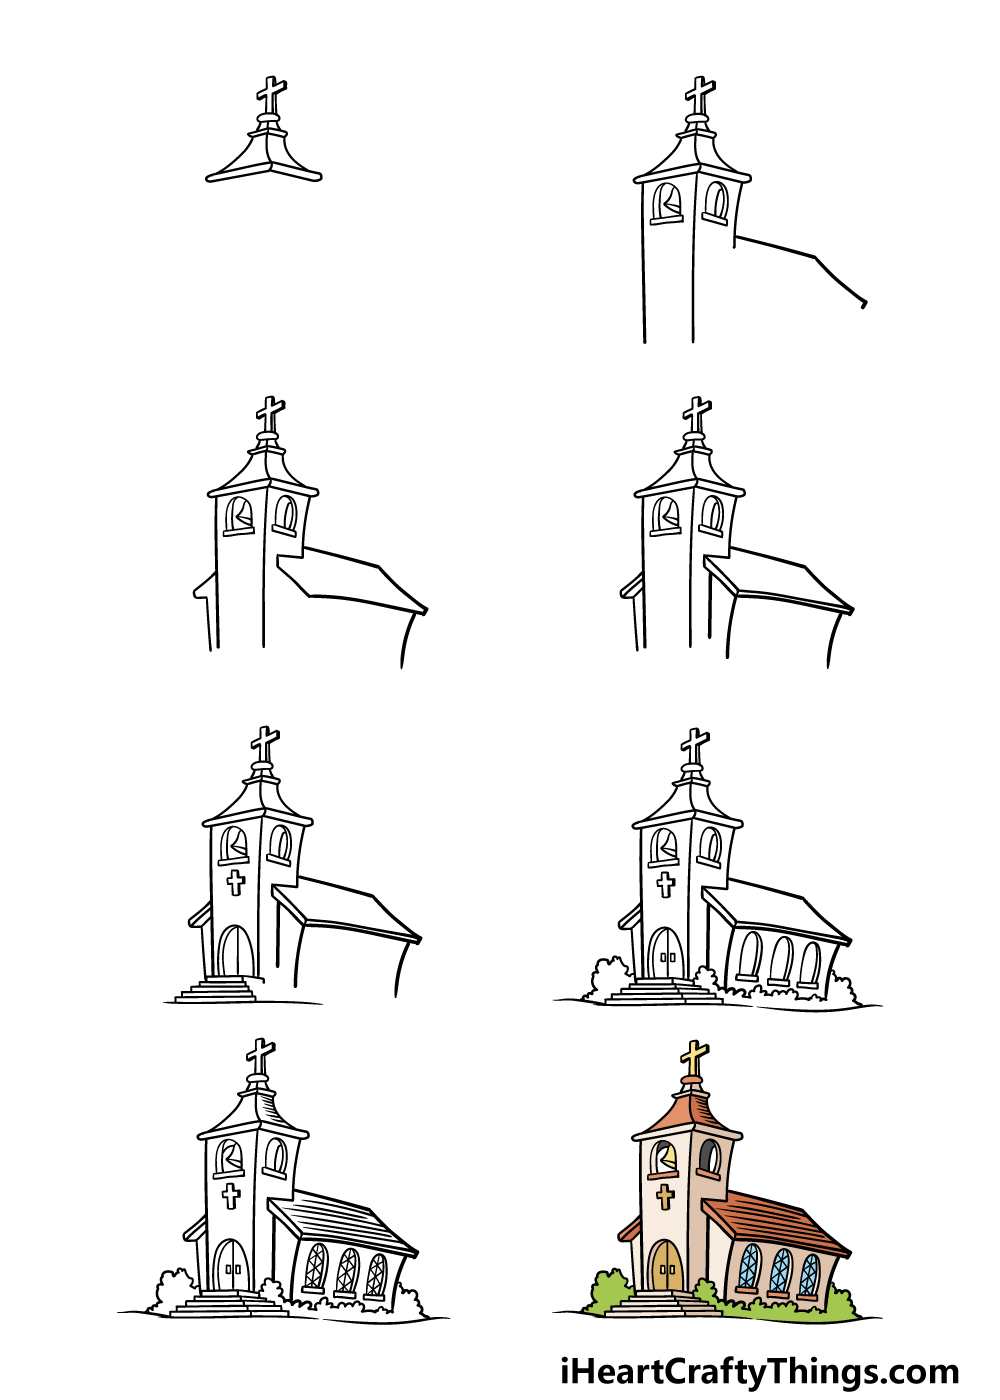 how to draw a church in 8 steps